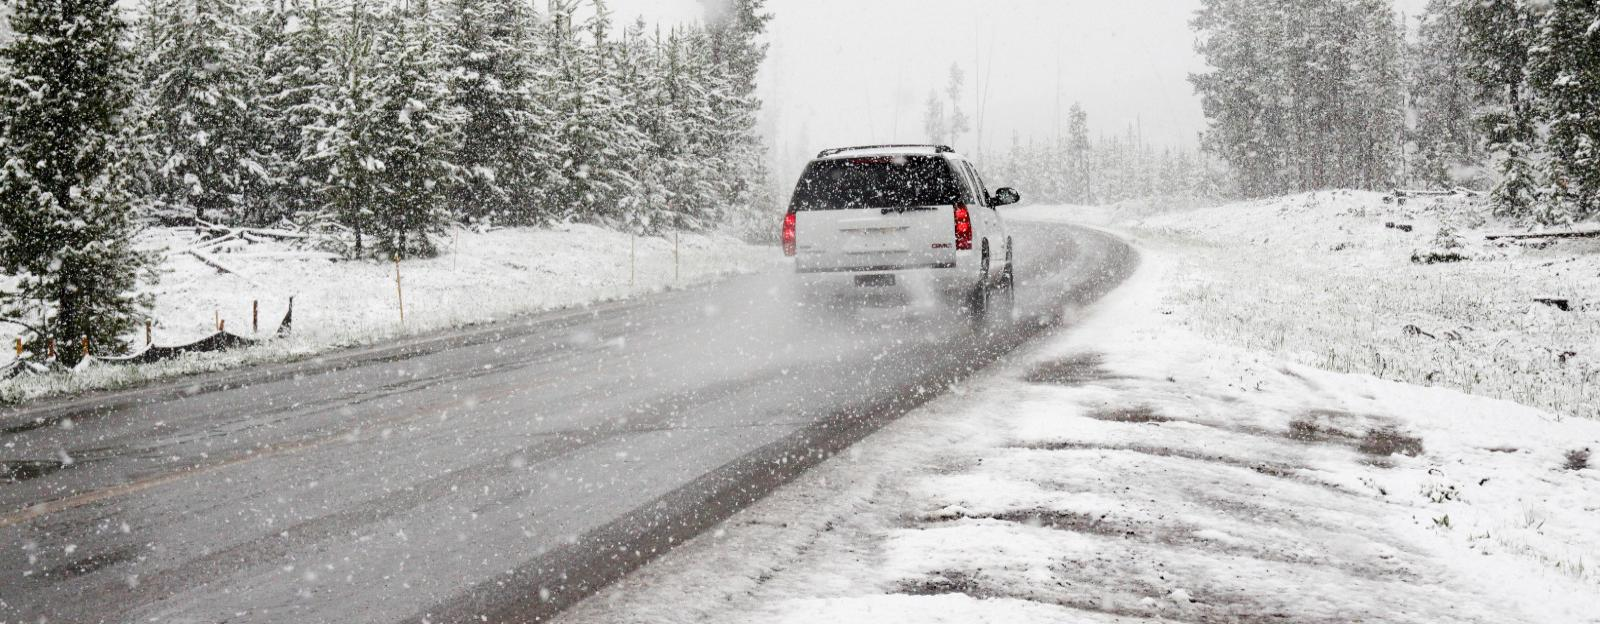 Winter Driving: Avoiding Risk